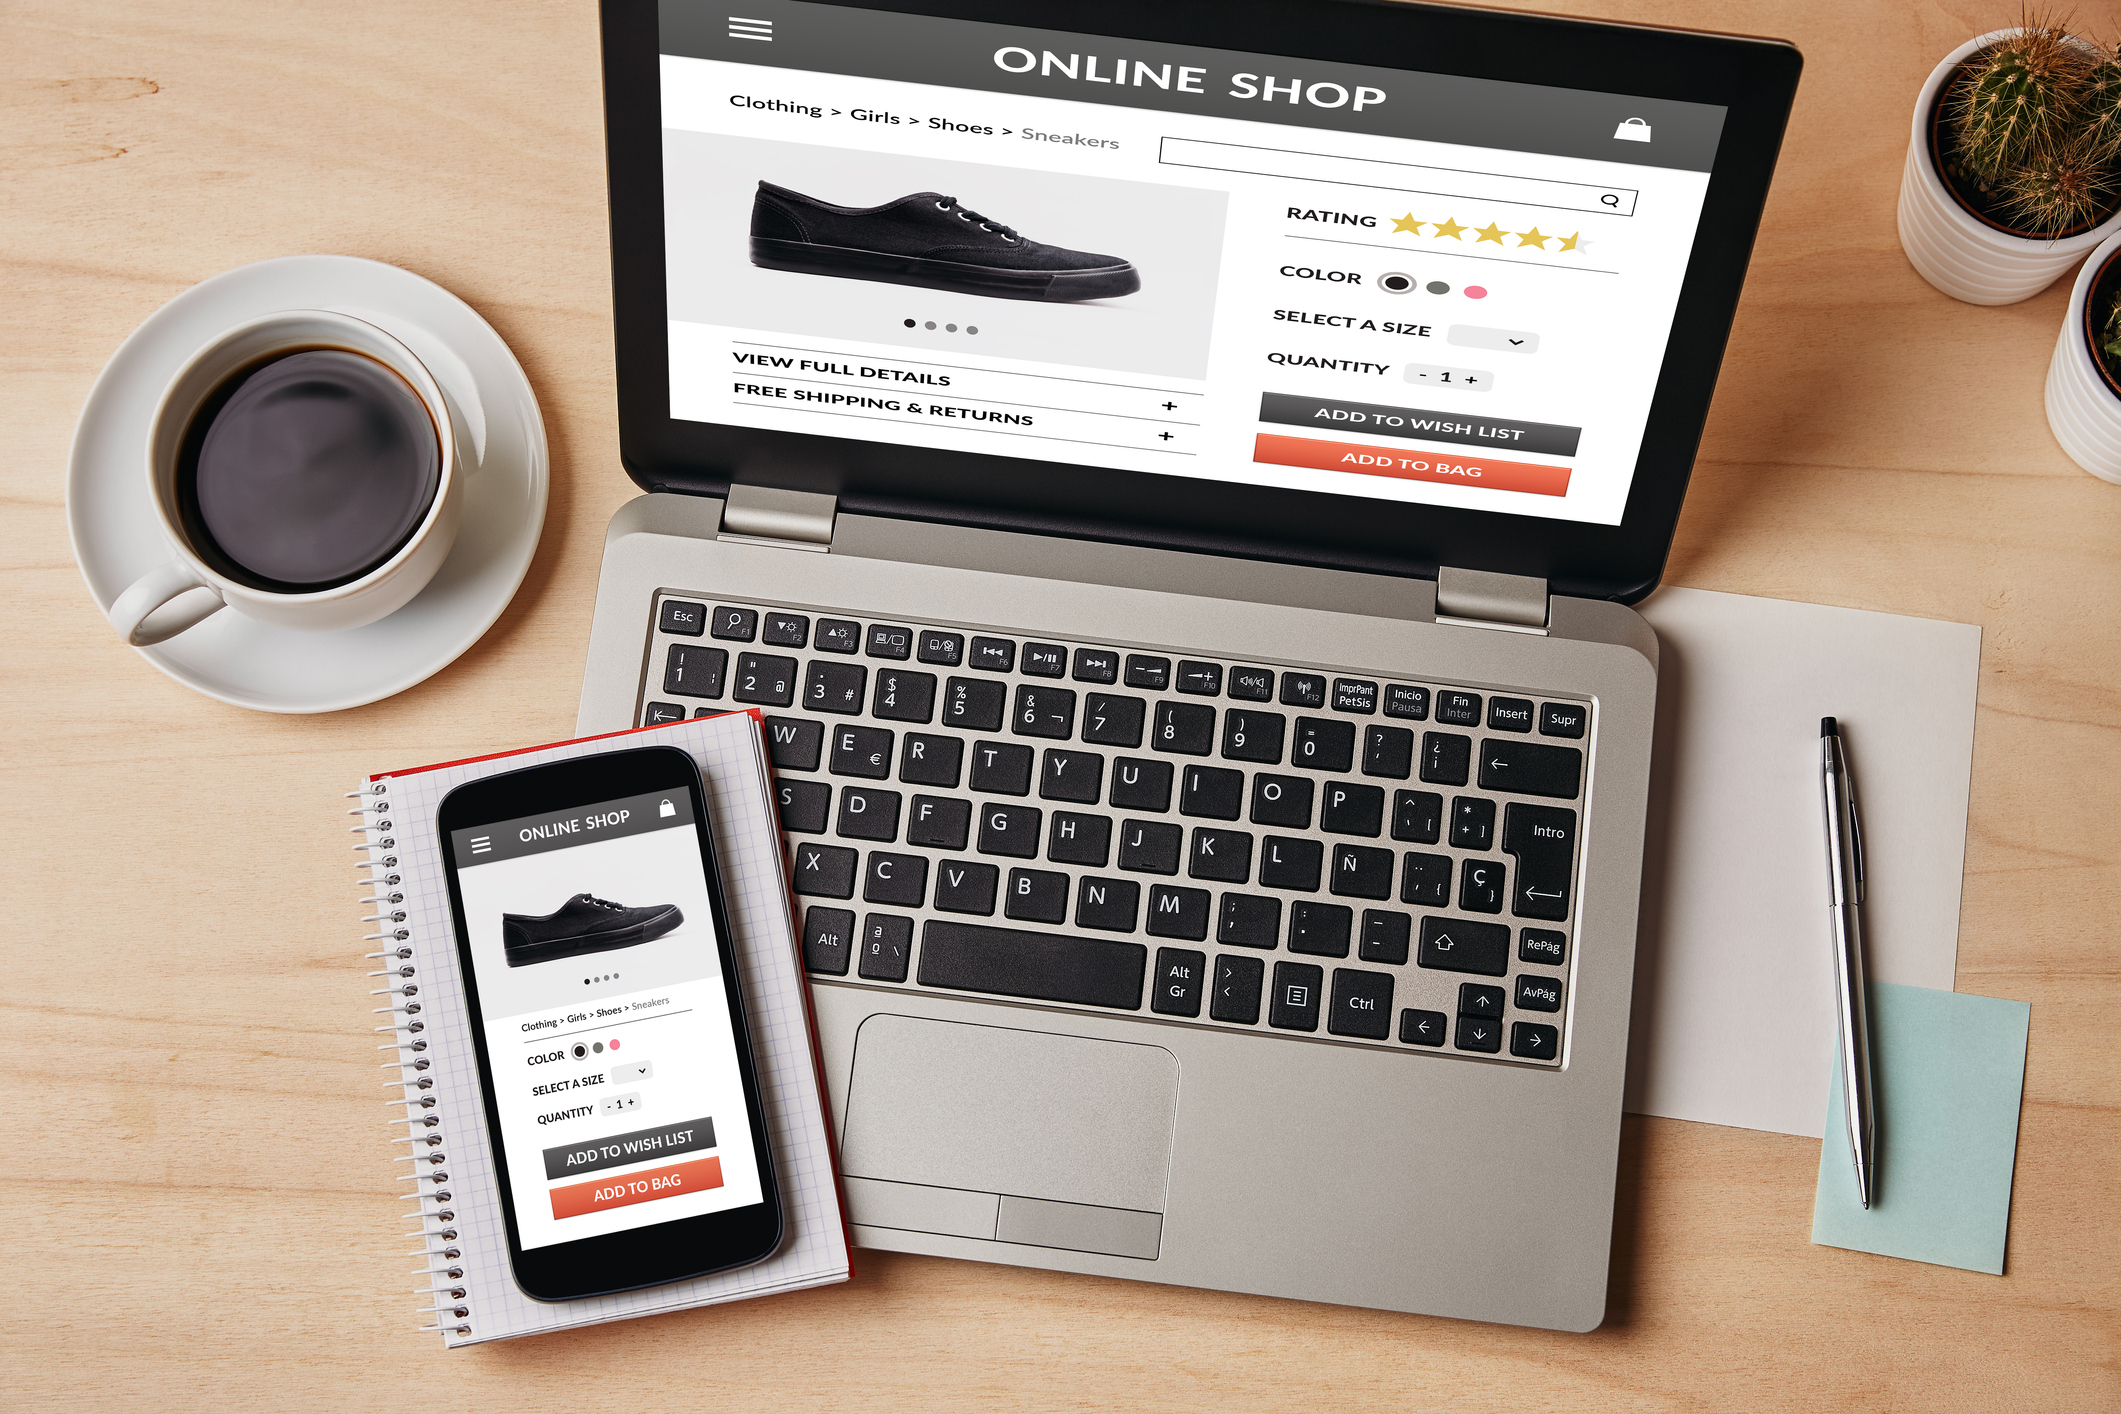 E-Commerce - Drive direct sales online, at an affordable, but most importantly profitable cost. Campaigns ranging from a 3.5x to 10x ROAS across 10+ different brands.